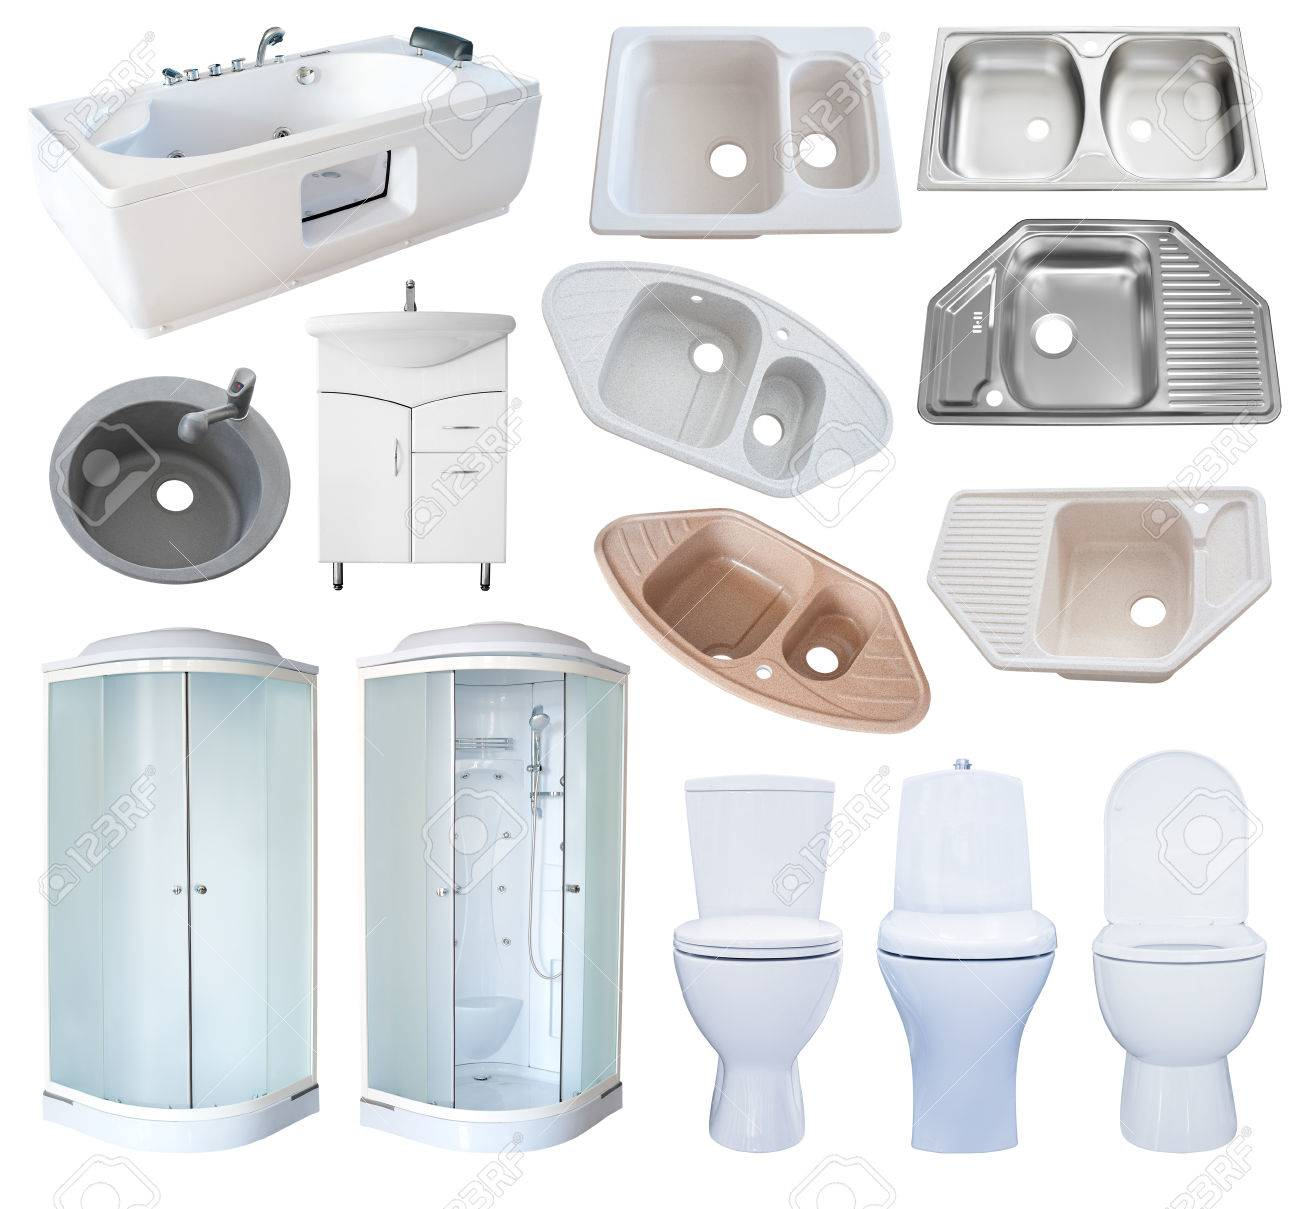 Genial A Set Of New Bathroom Equipment (sanitaryware), Isolated Over White Stock  Photo